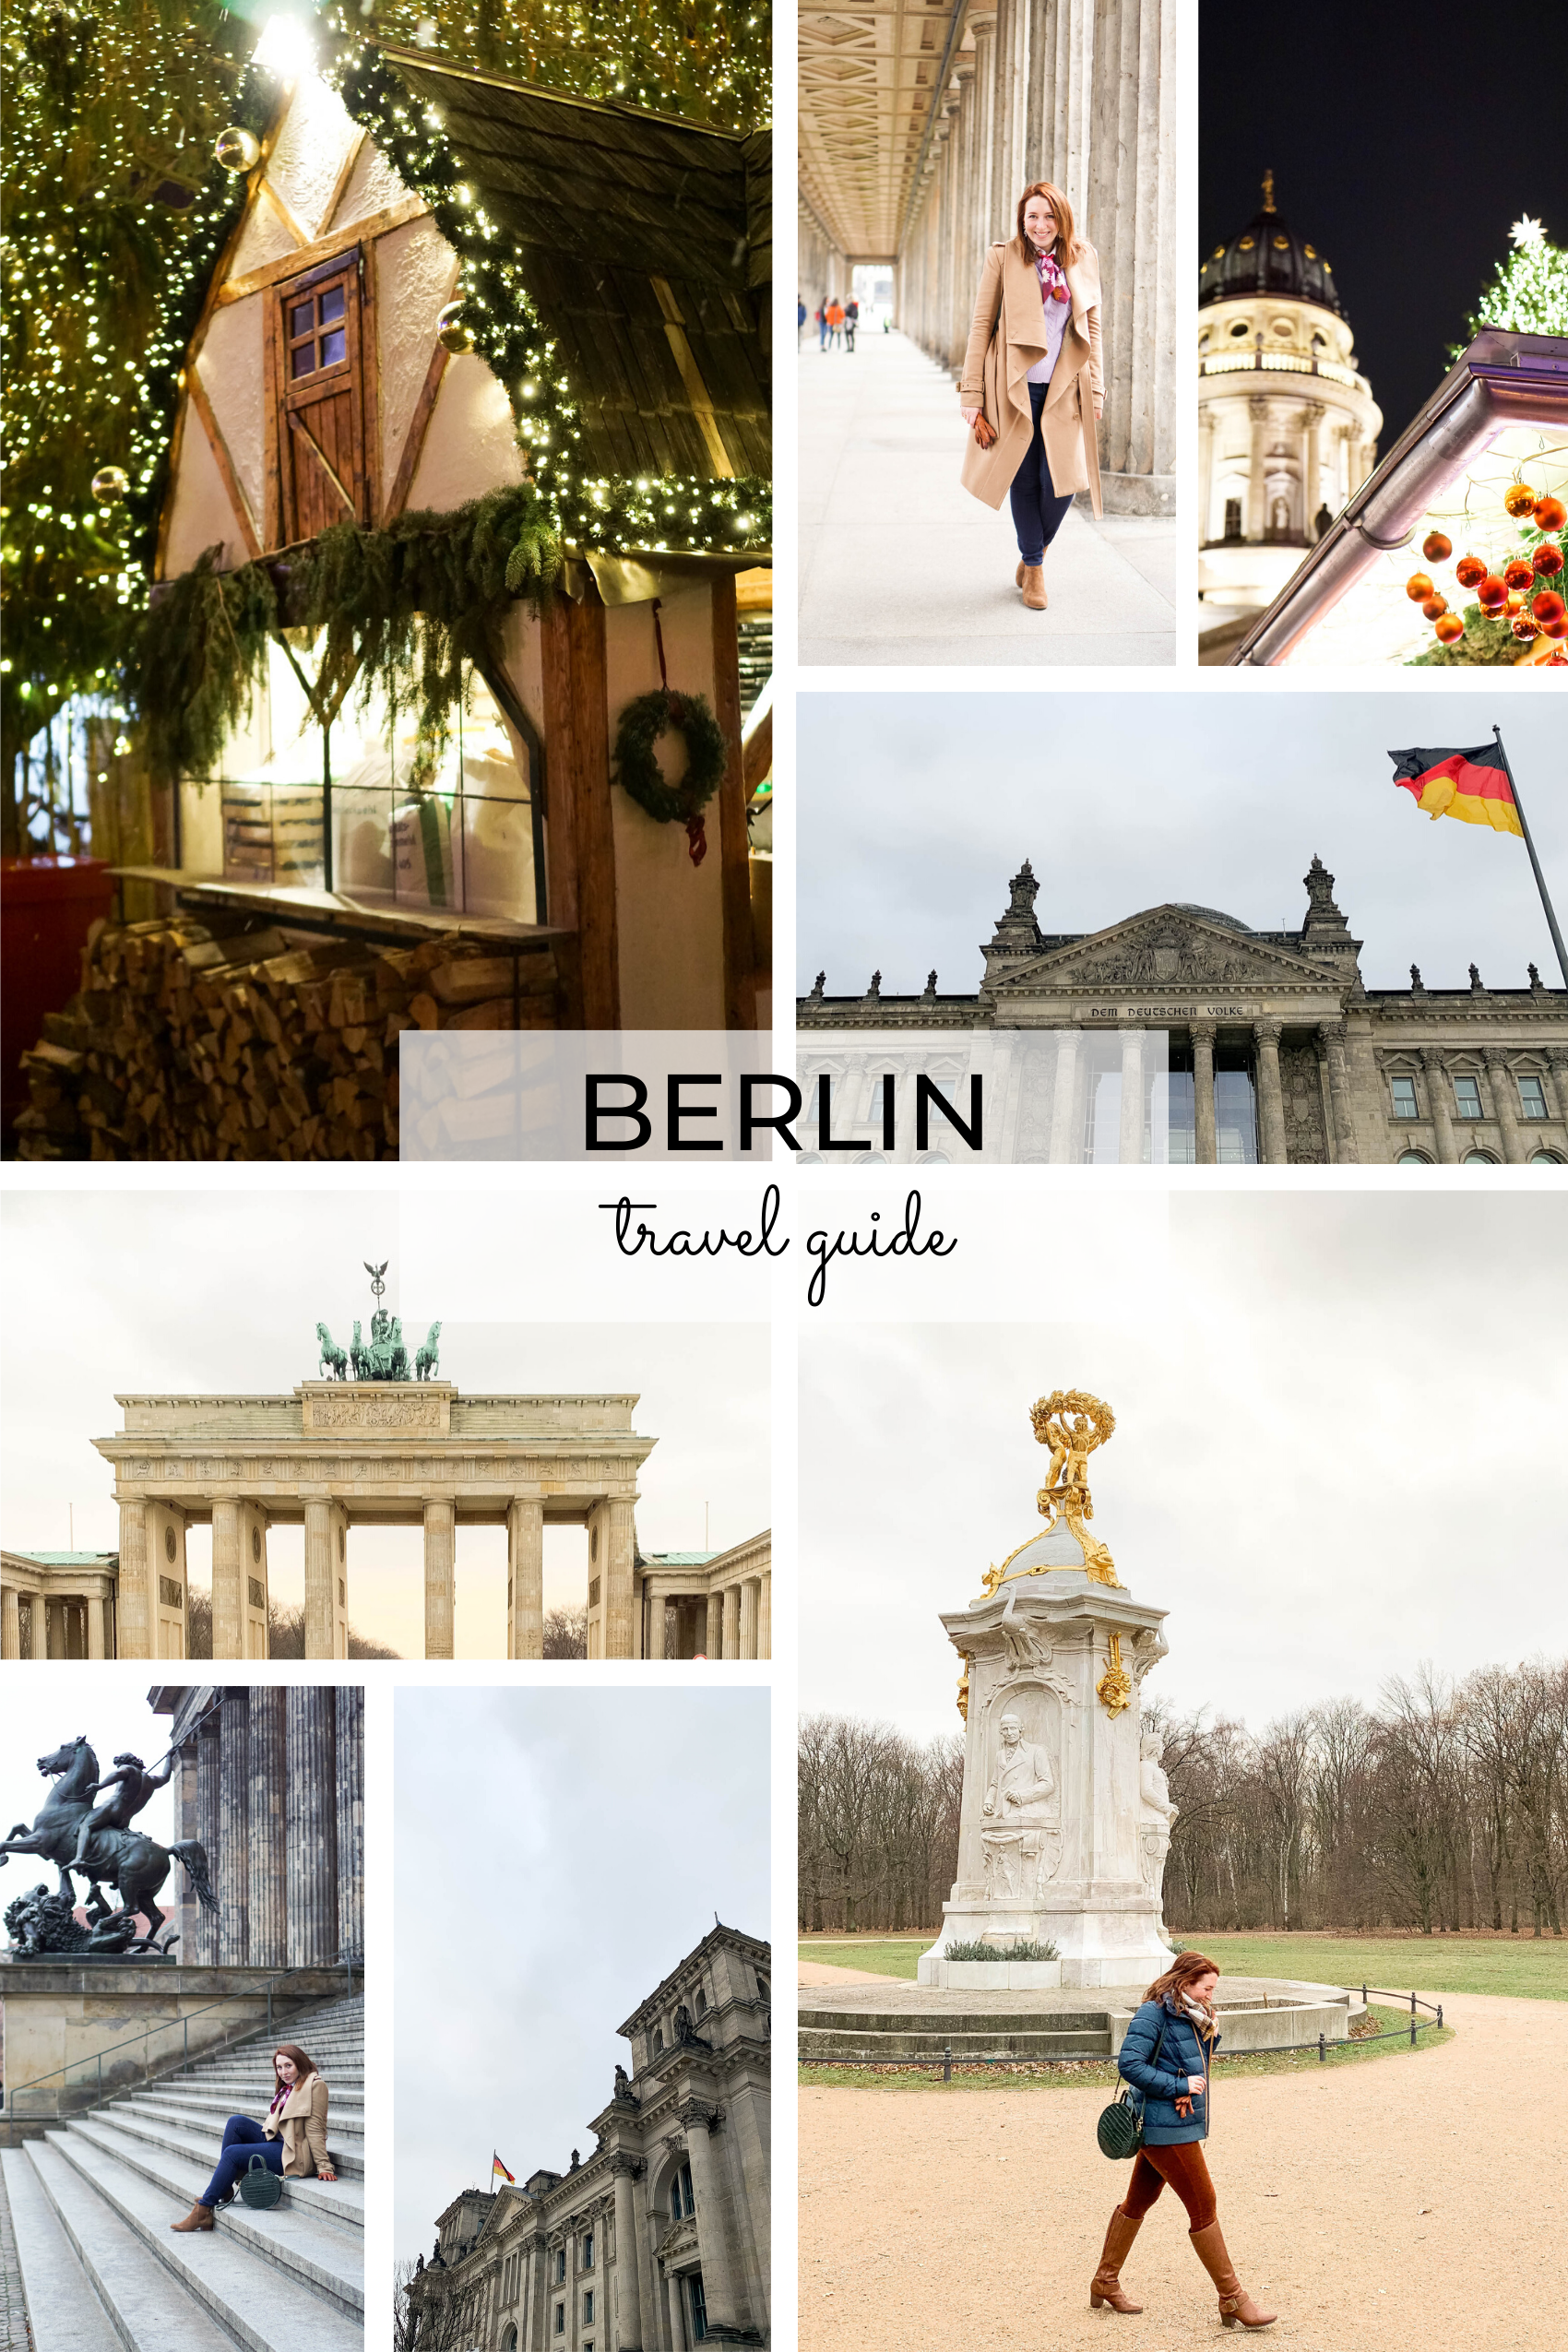 Berlin Travel Guide | Where to Eat in Berlin | Restaurants in Berlin | Hotels in Berlin | Where to Stay in Berlin | What to Do in Berlin | Best Christmas Markets in Berlin | Long Weekend in Berlin | Berlin City Guide by Travel Blogger Glitter & Spice